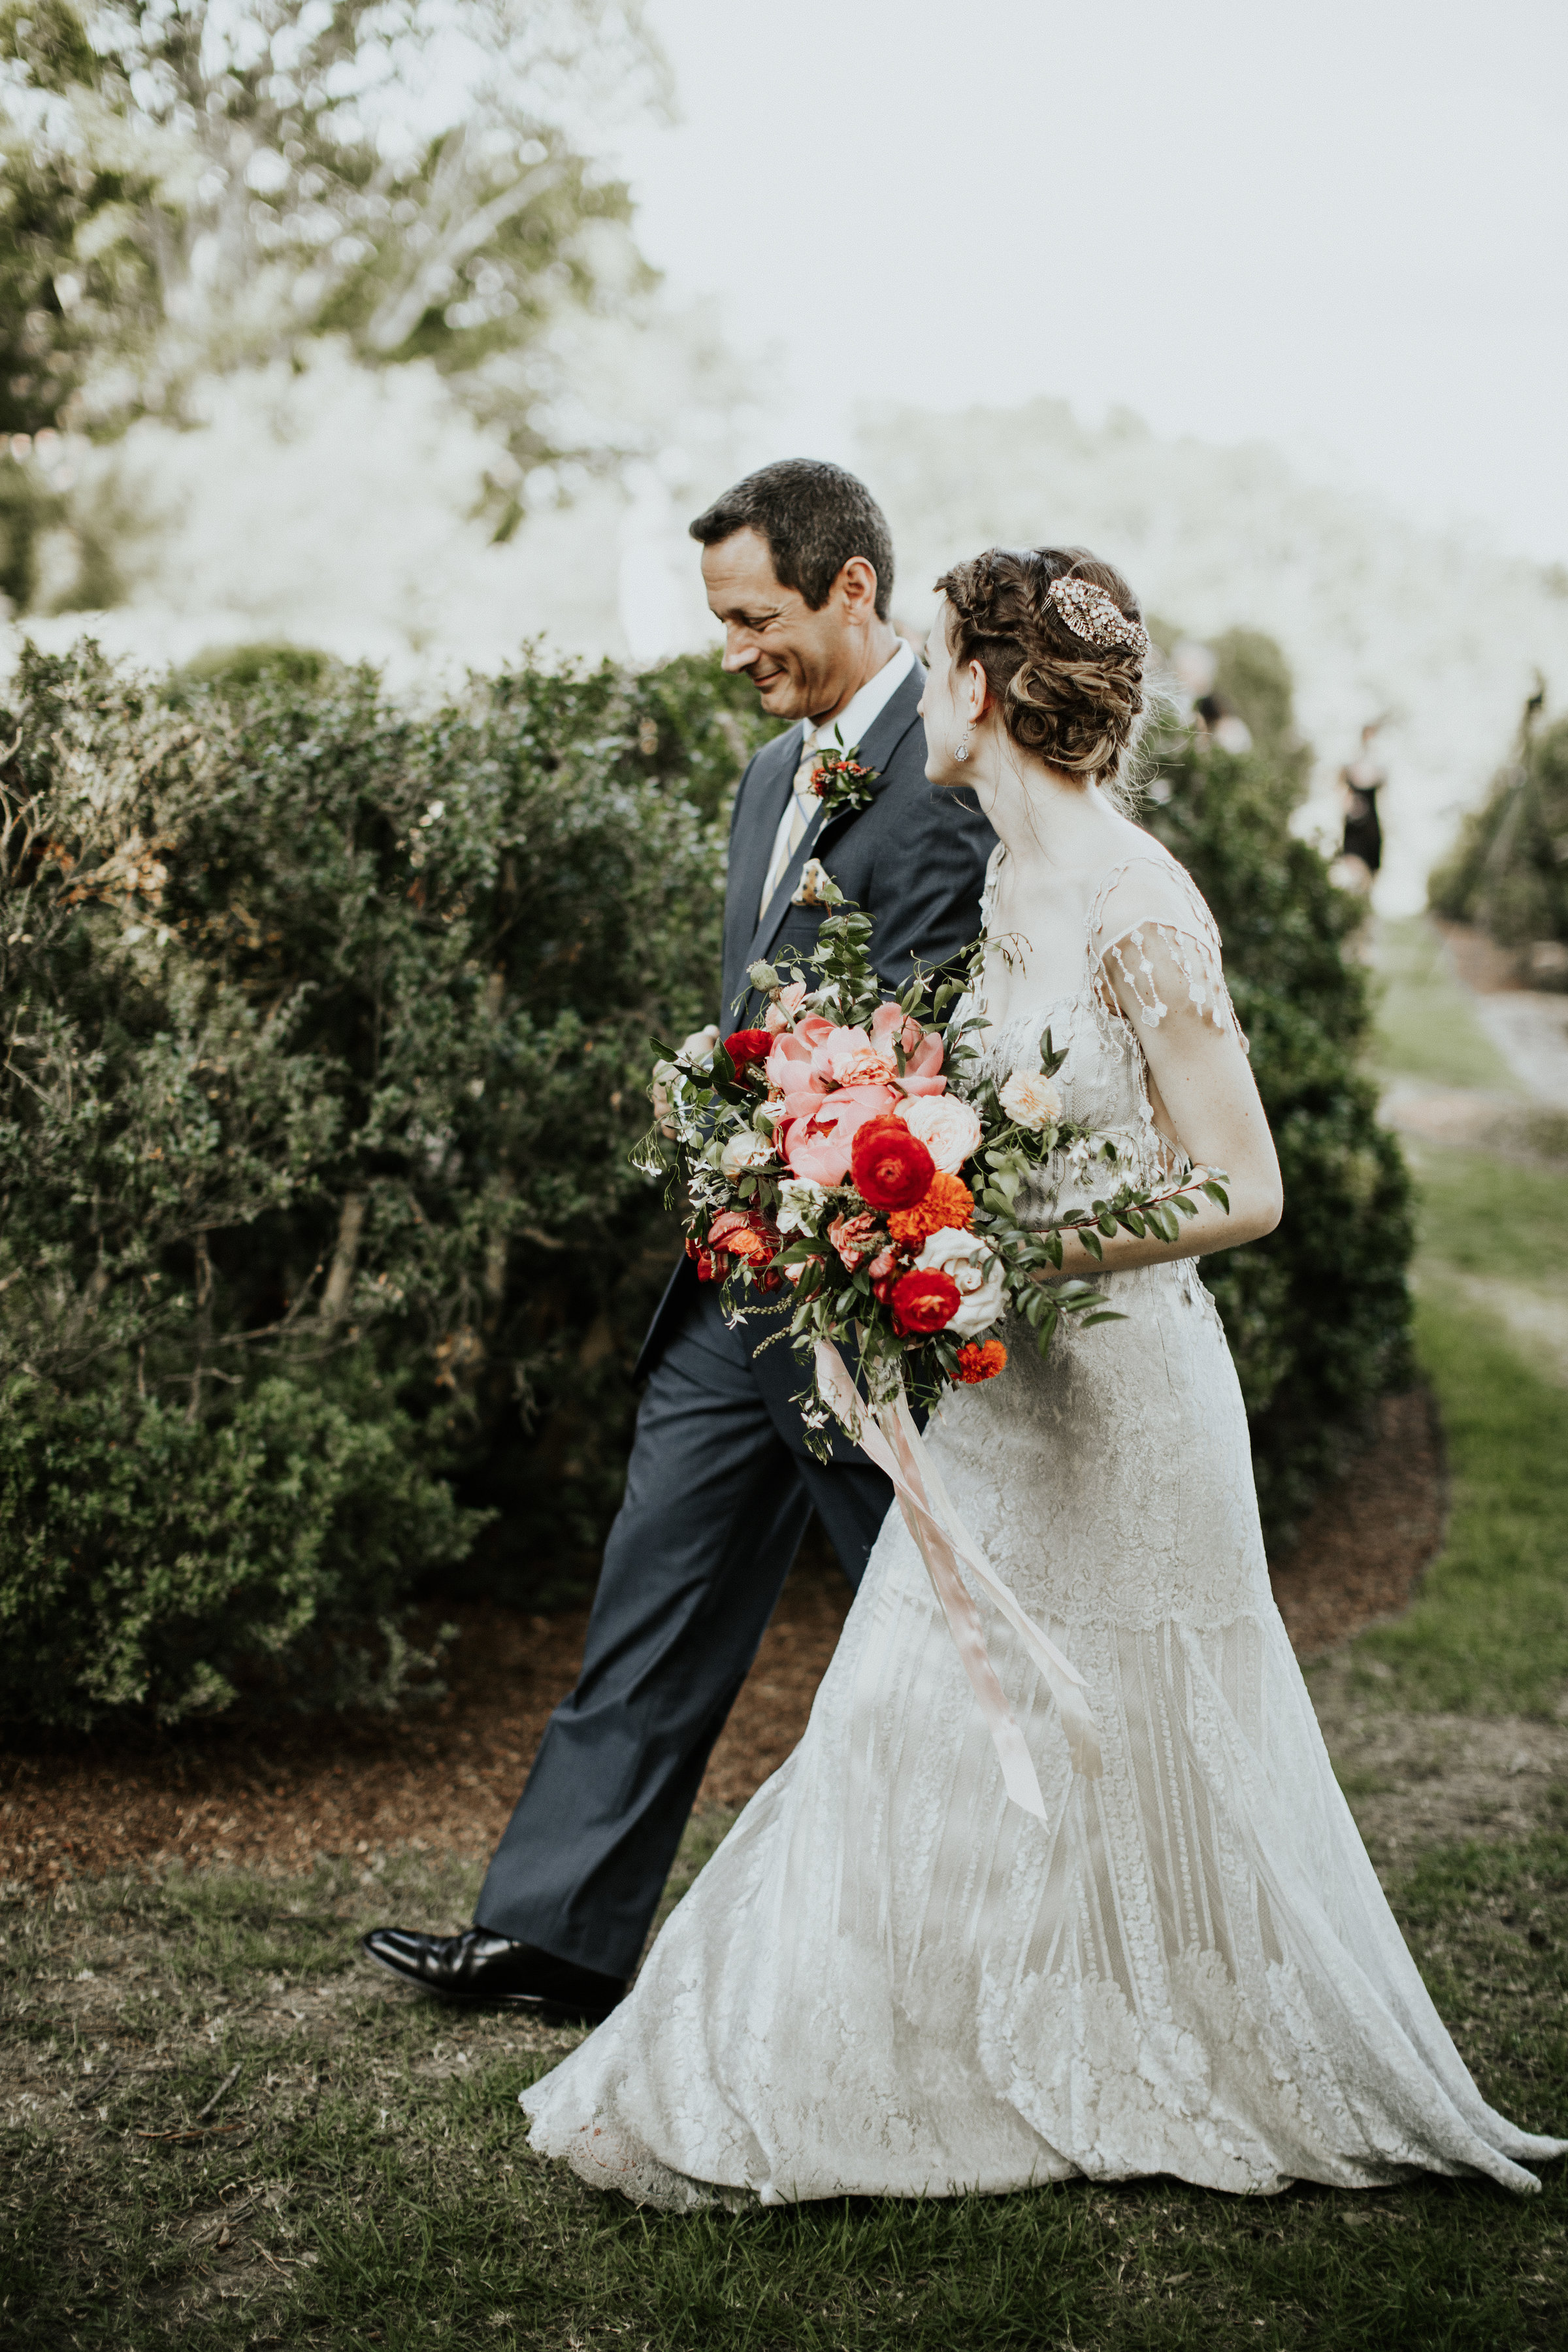 Father walking the bride down the aisle // Botanic garden wedding with lush, organic floral design in Nashville